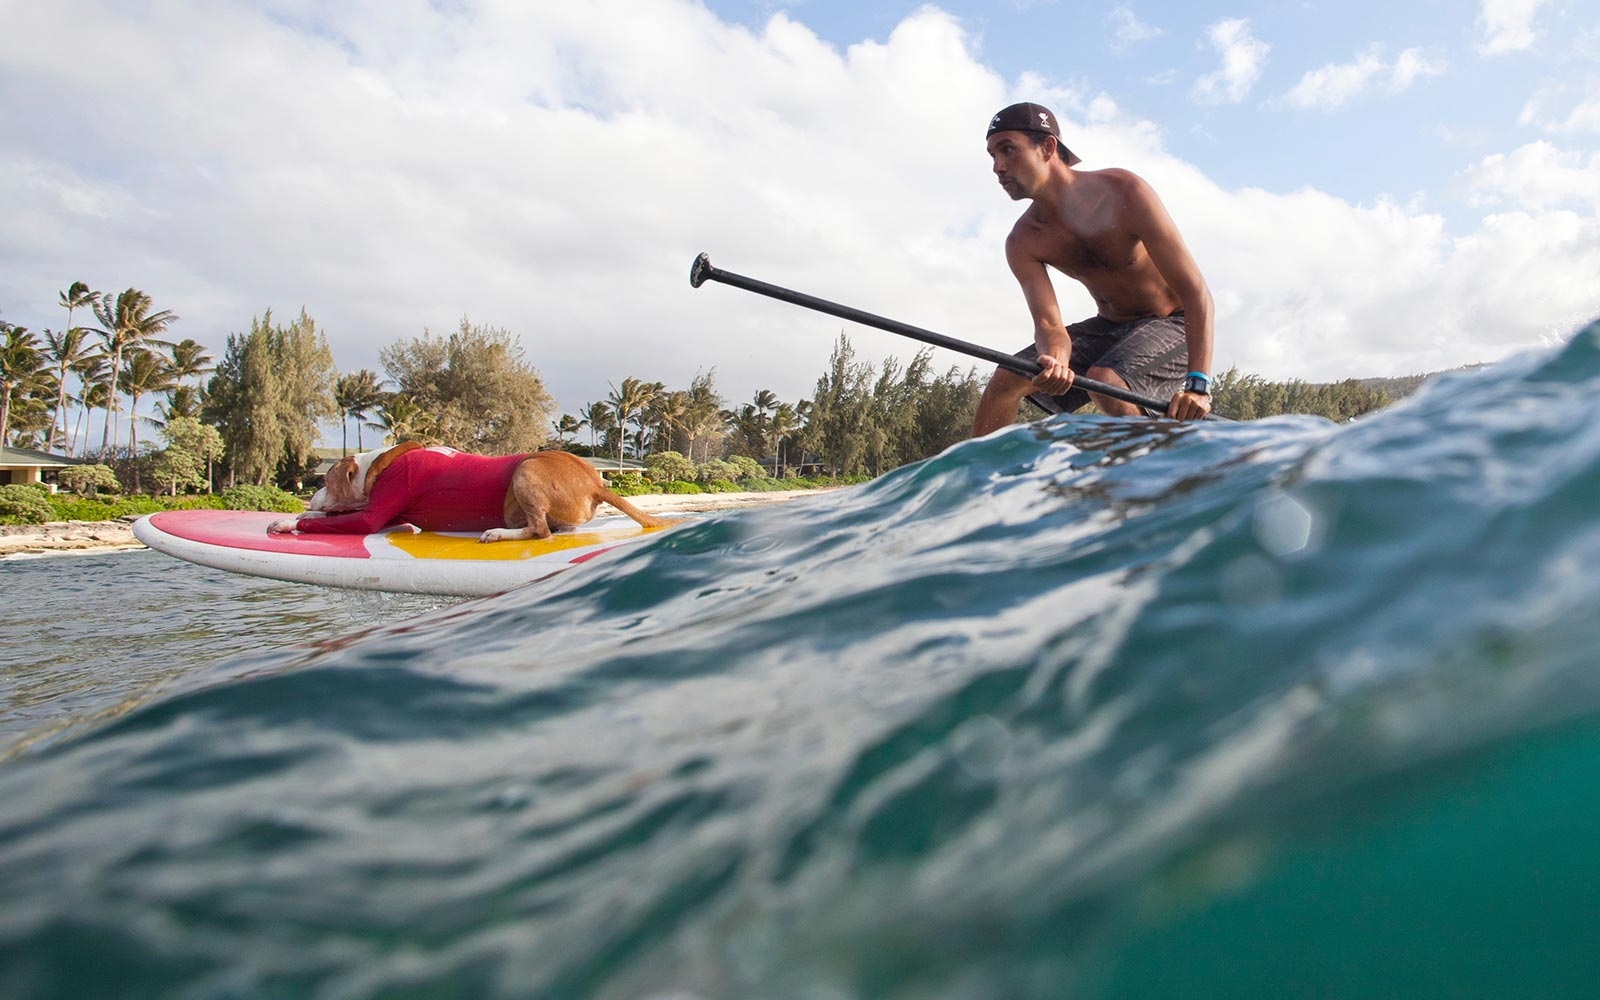 You Can Surf With Dogs and Swim With Sharks at This Hawaiian Resort